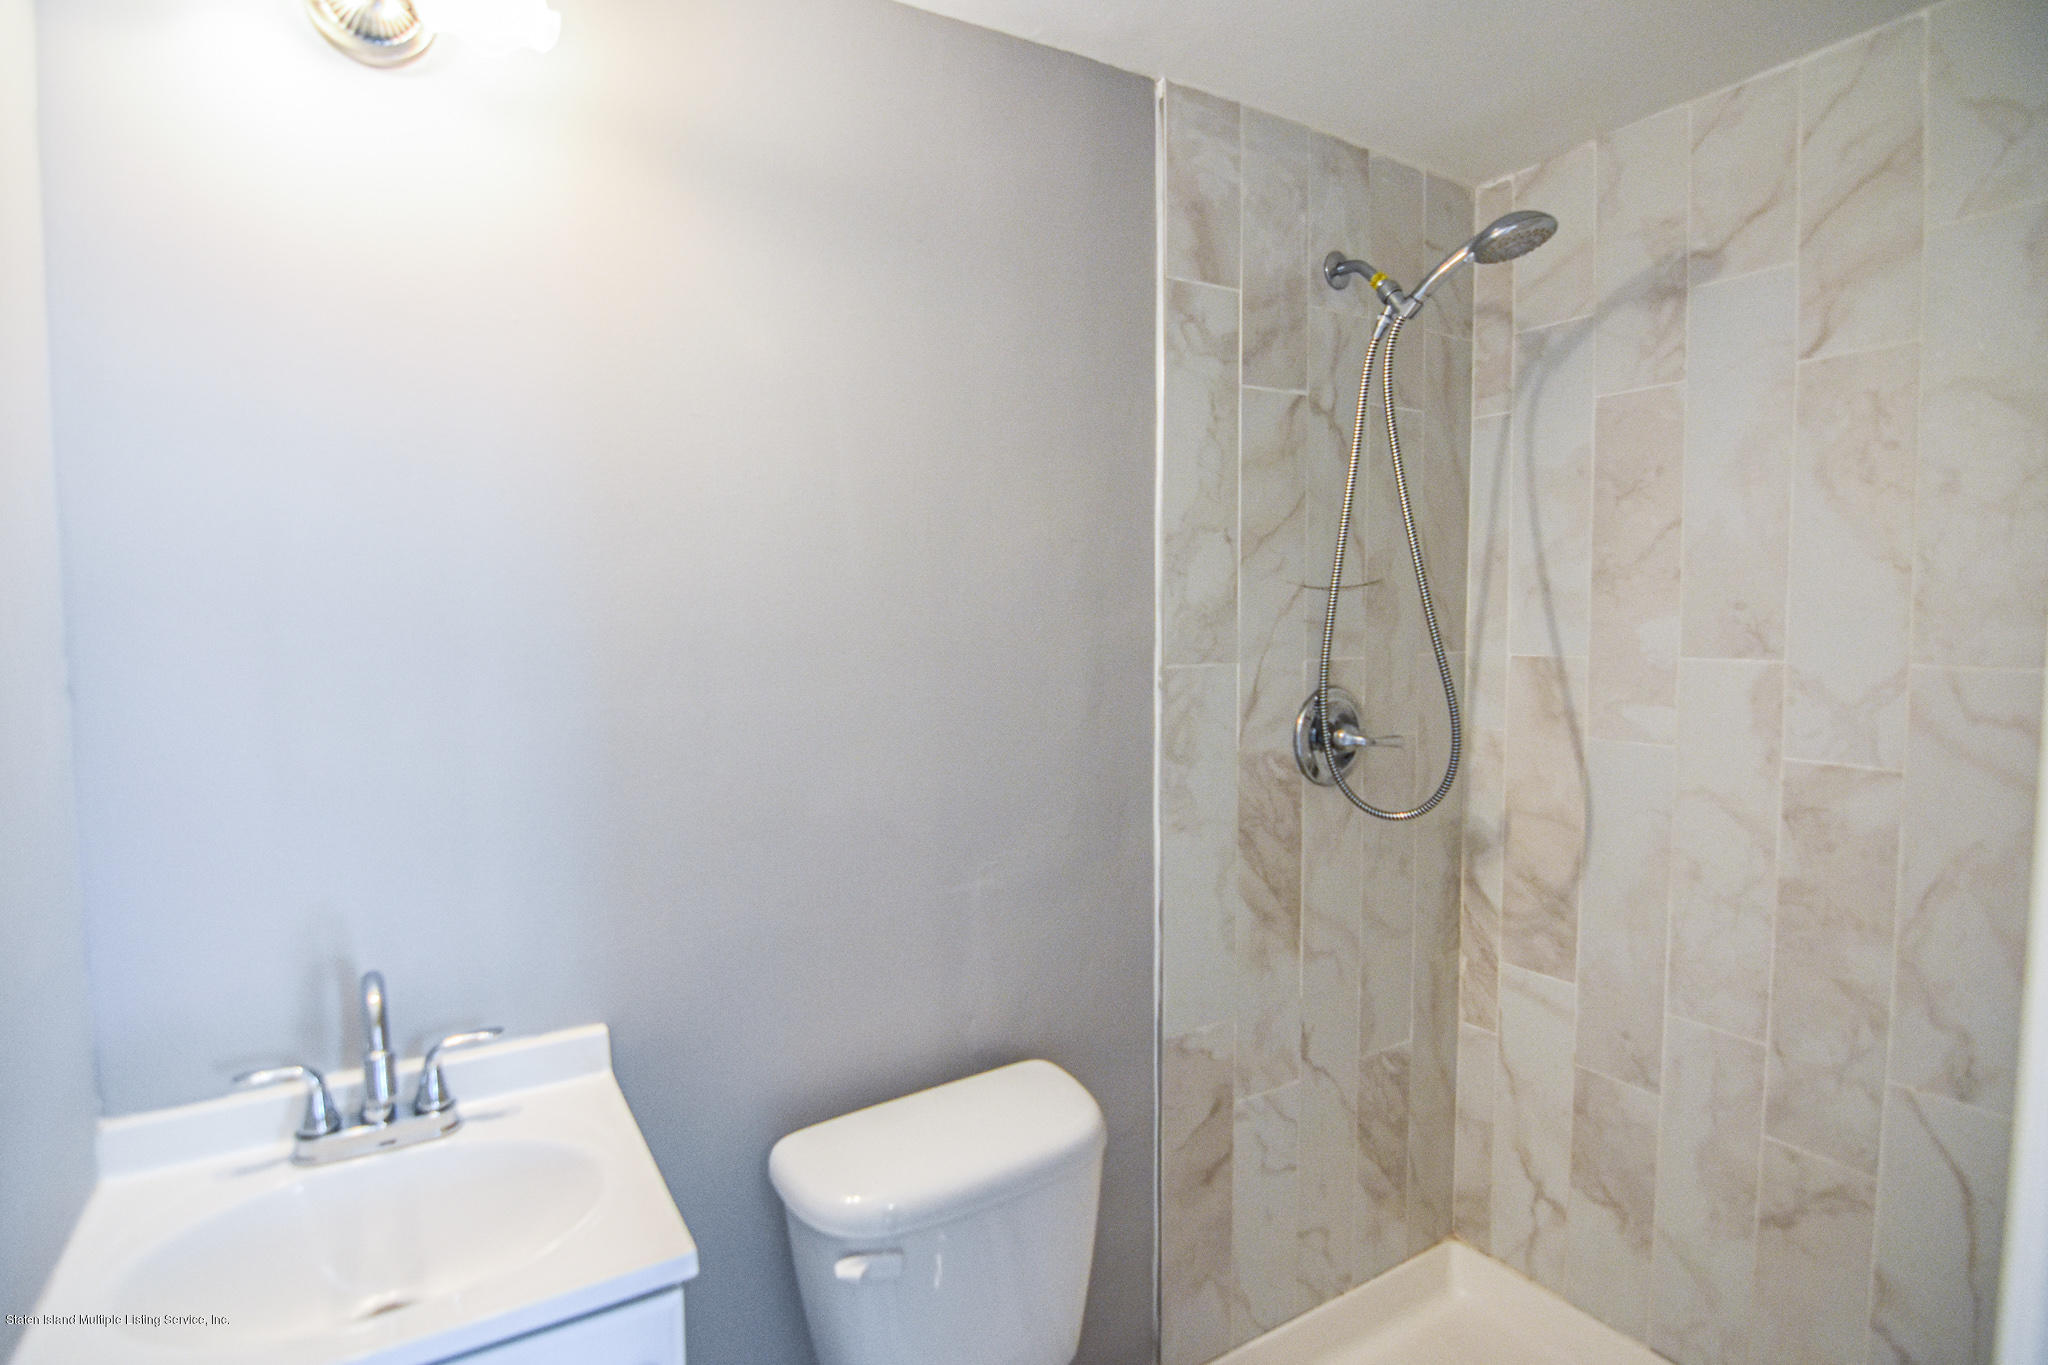 Single Family - Semi-Attached 12 Ebey Lane  Staten Island, NY 10312, MLS-1131132-20